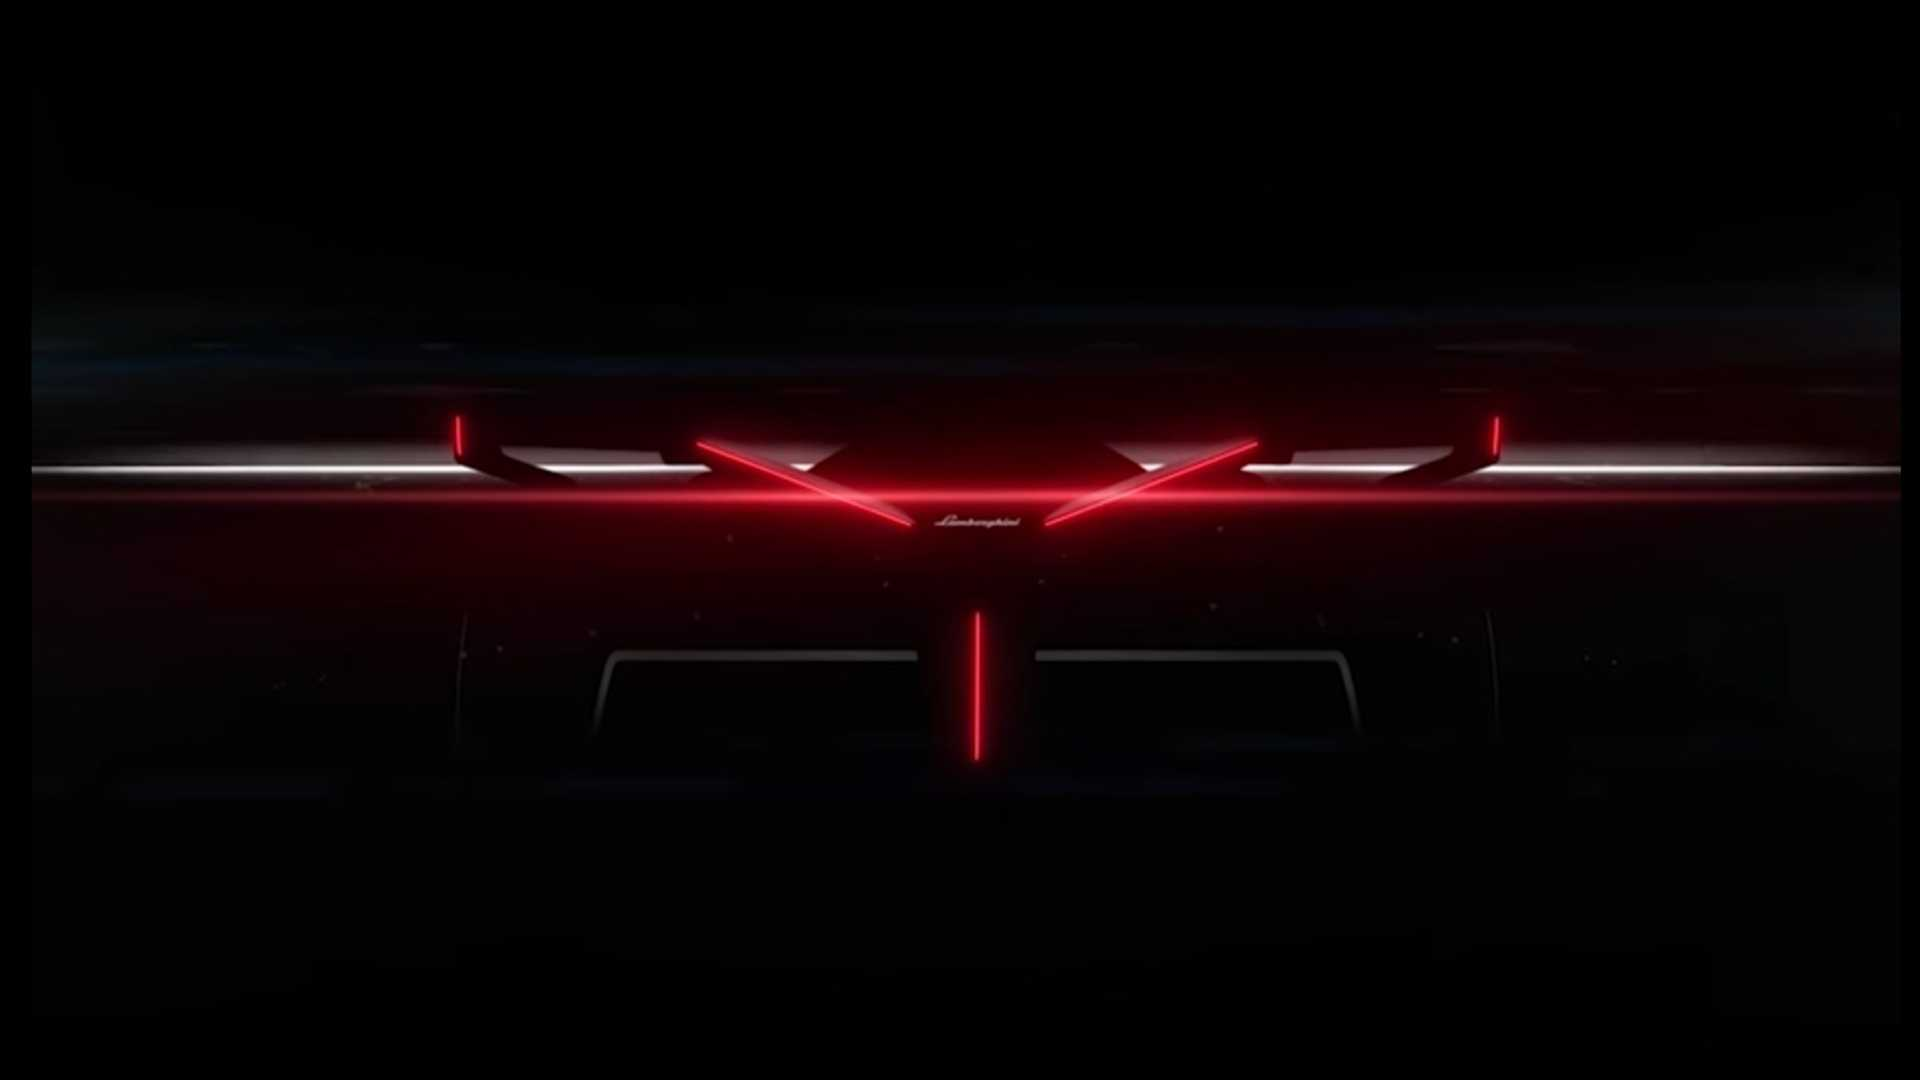 Lamborghini Vision Gran Turismo Teased With Angry Sound